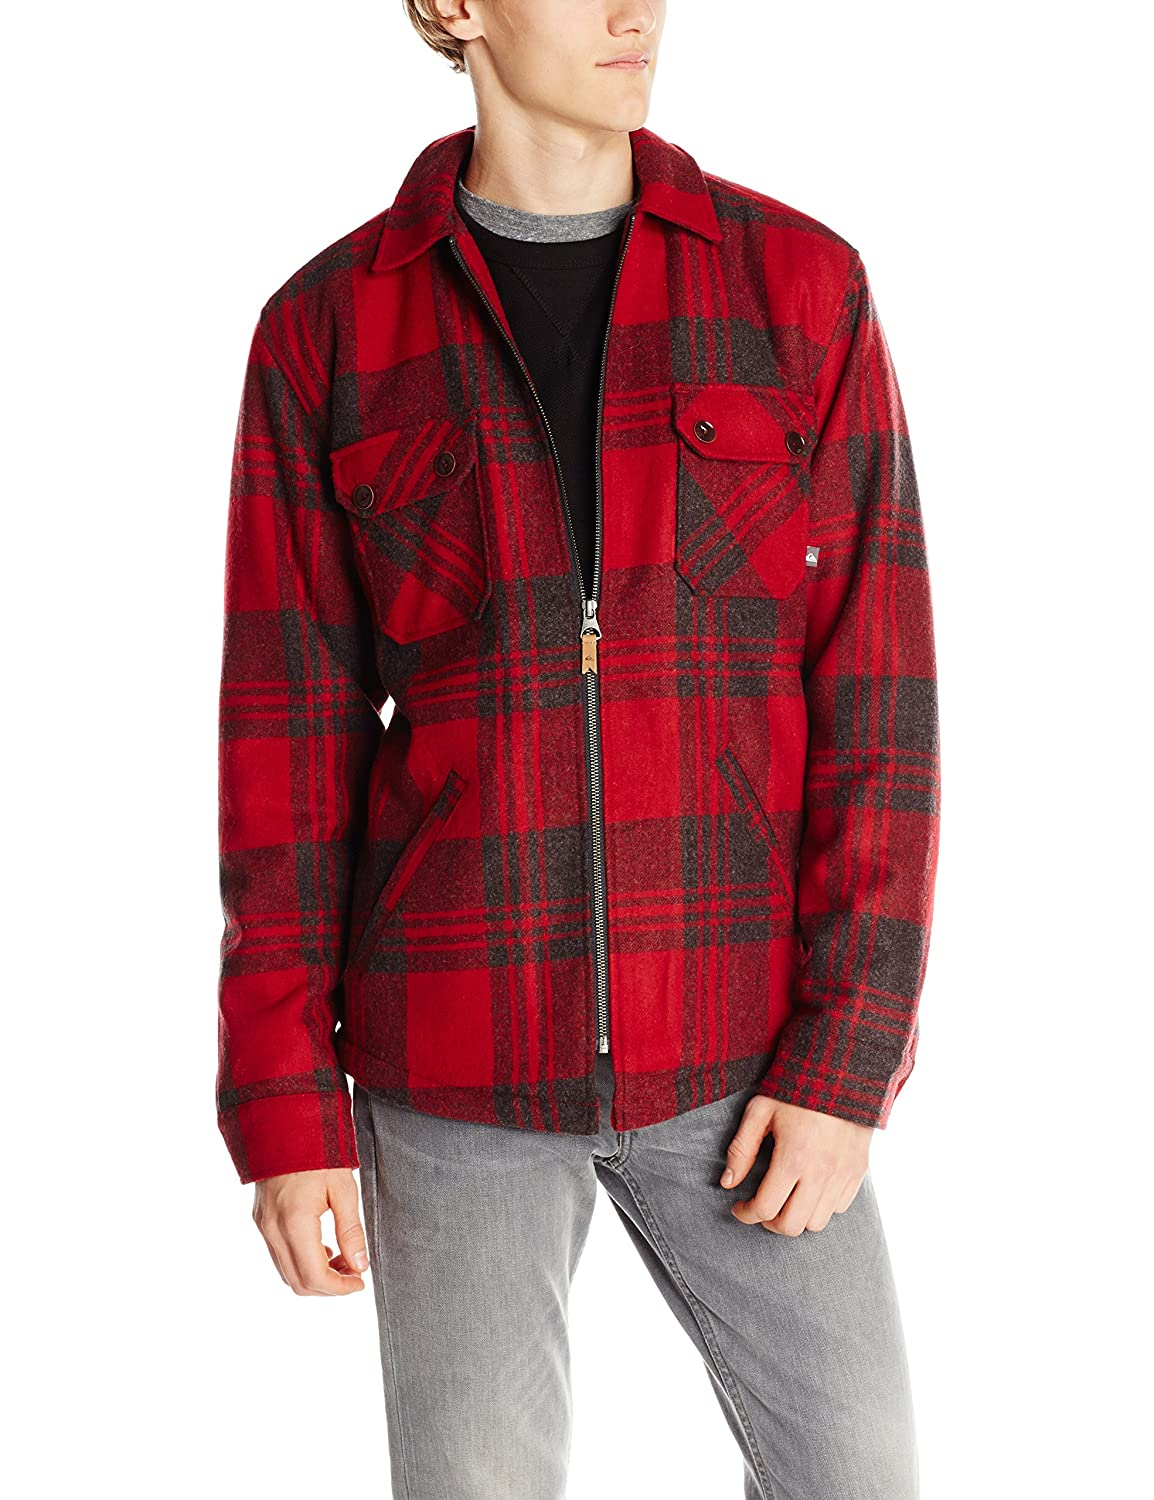 Quiksilver Otama Jacket - Quik Red